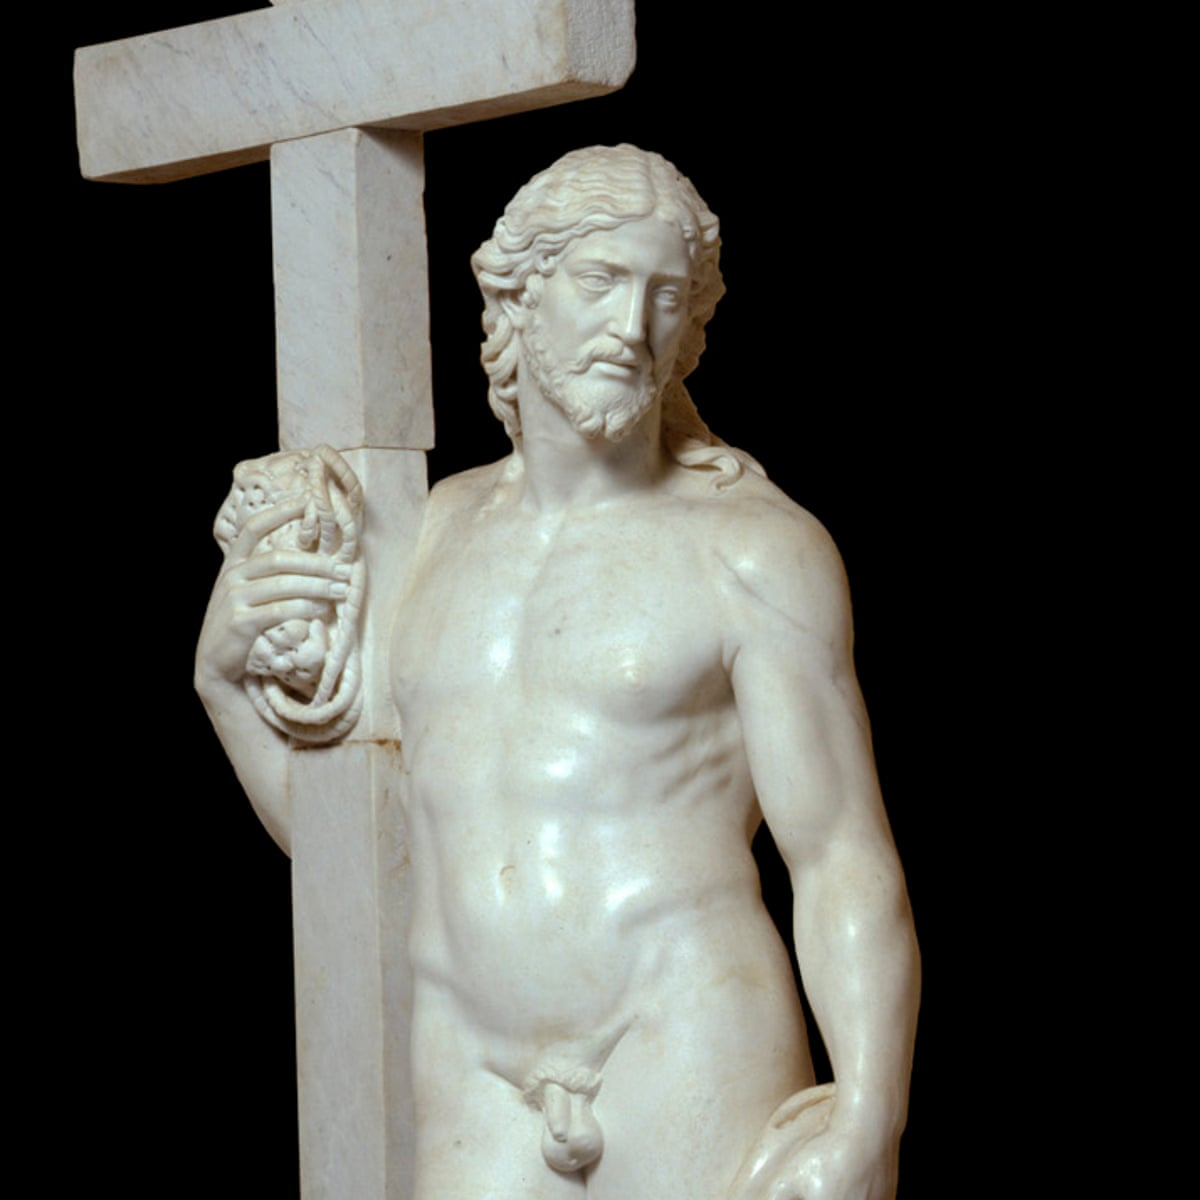 In All His Glory Michelangelo S Naked Christ Comes To Britain Art And Design The Guardian